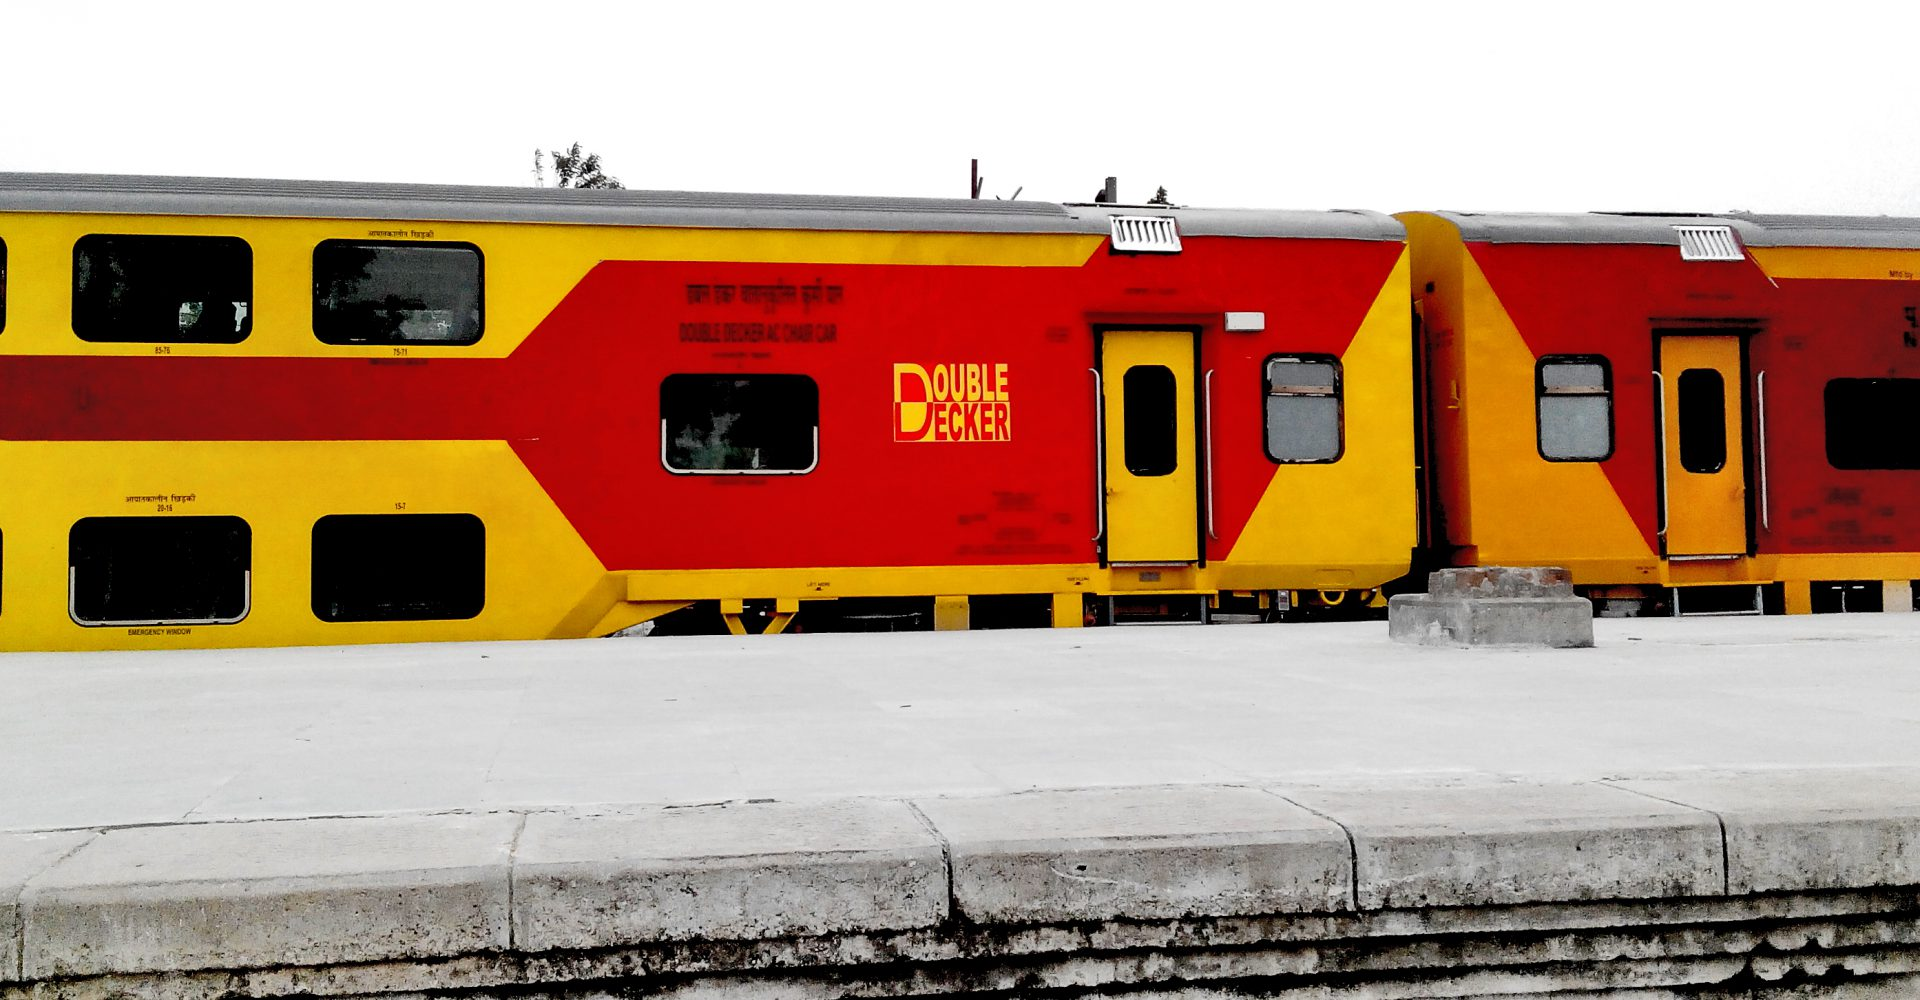 picture of double decker train at Lucknow